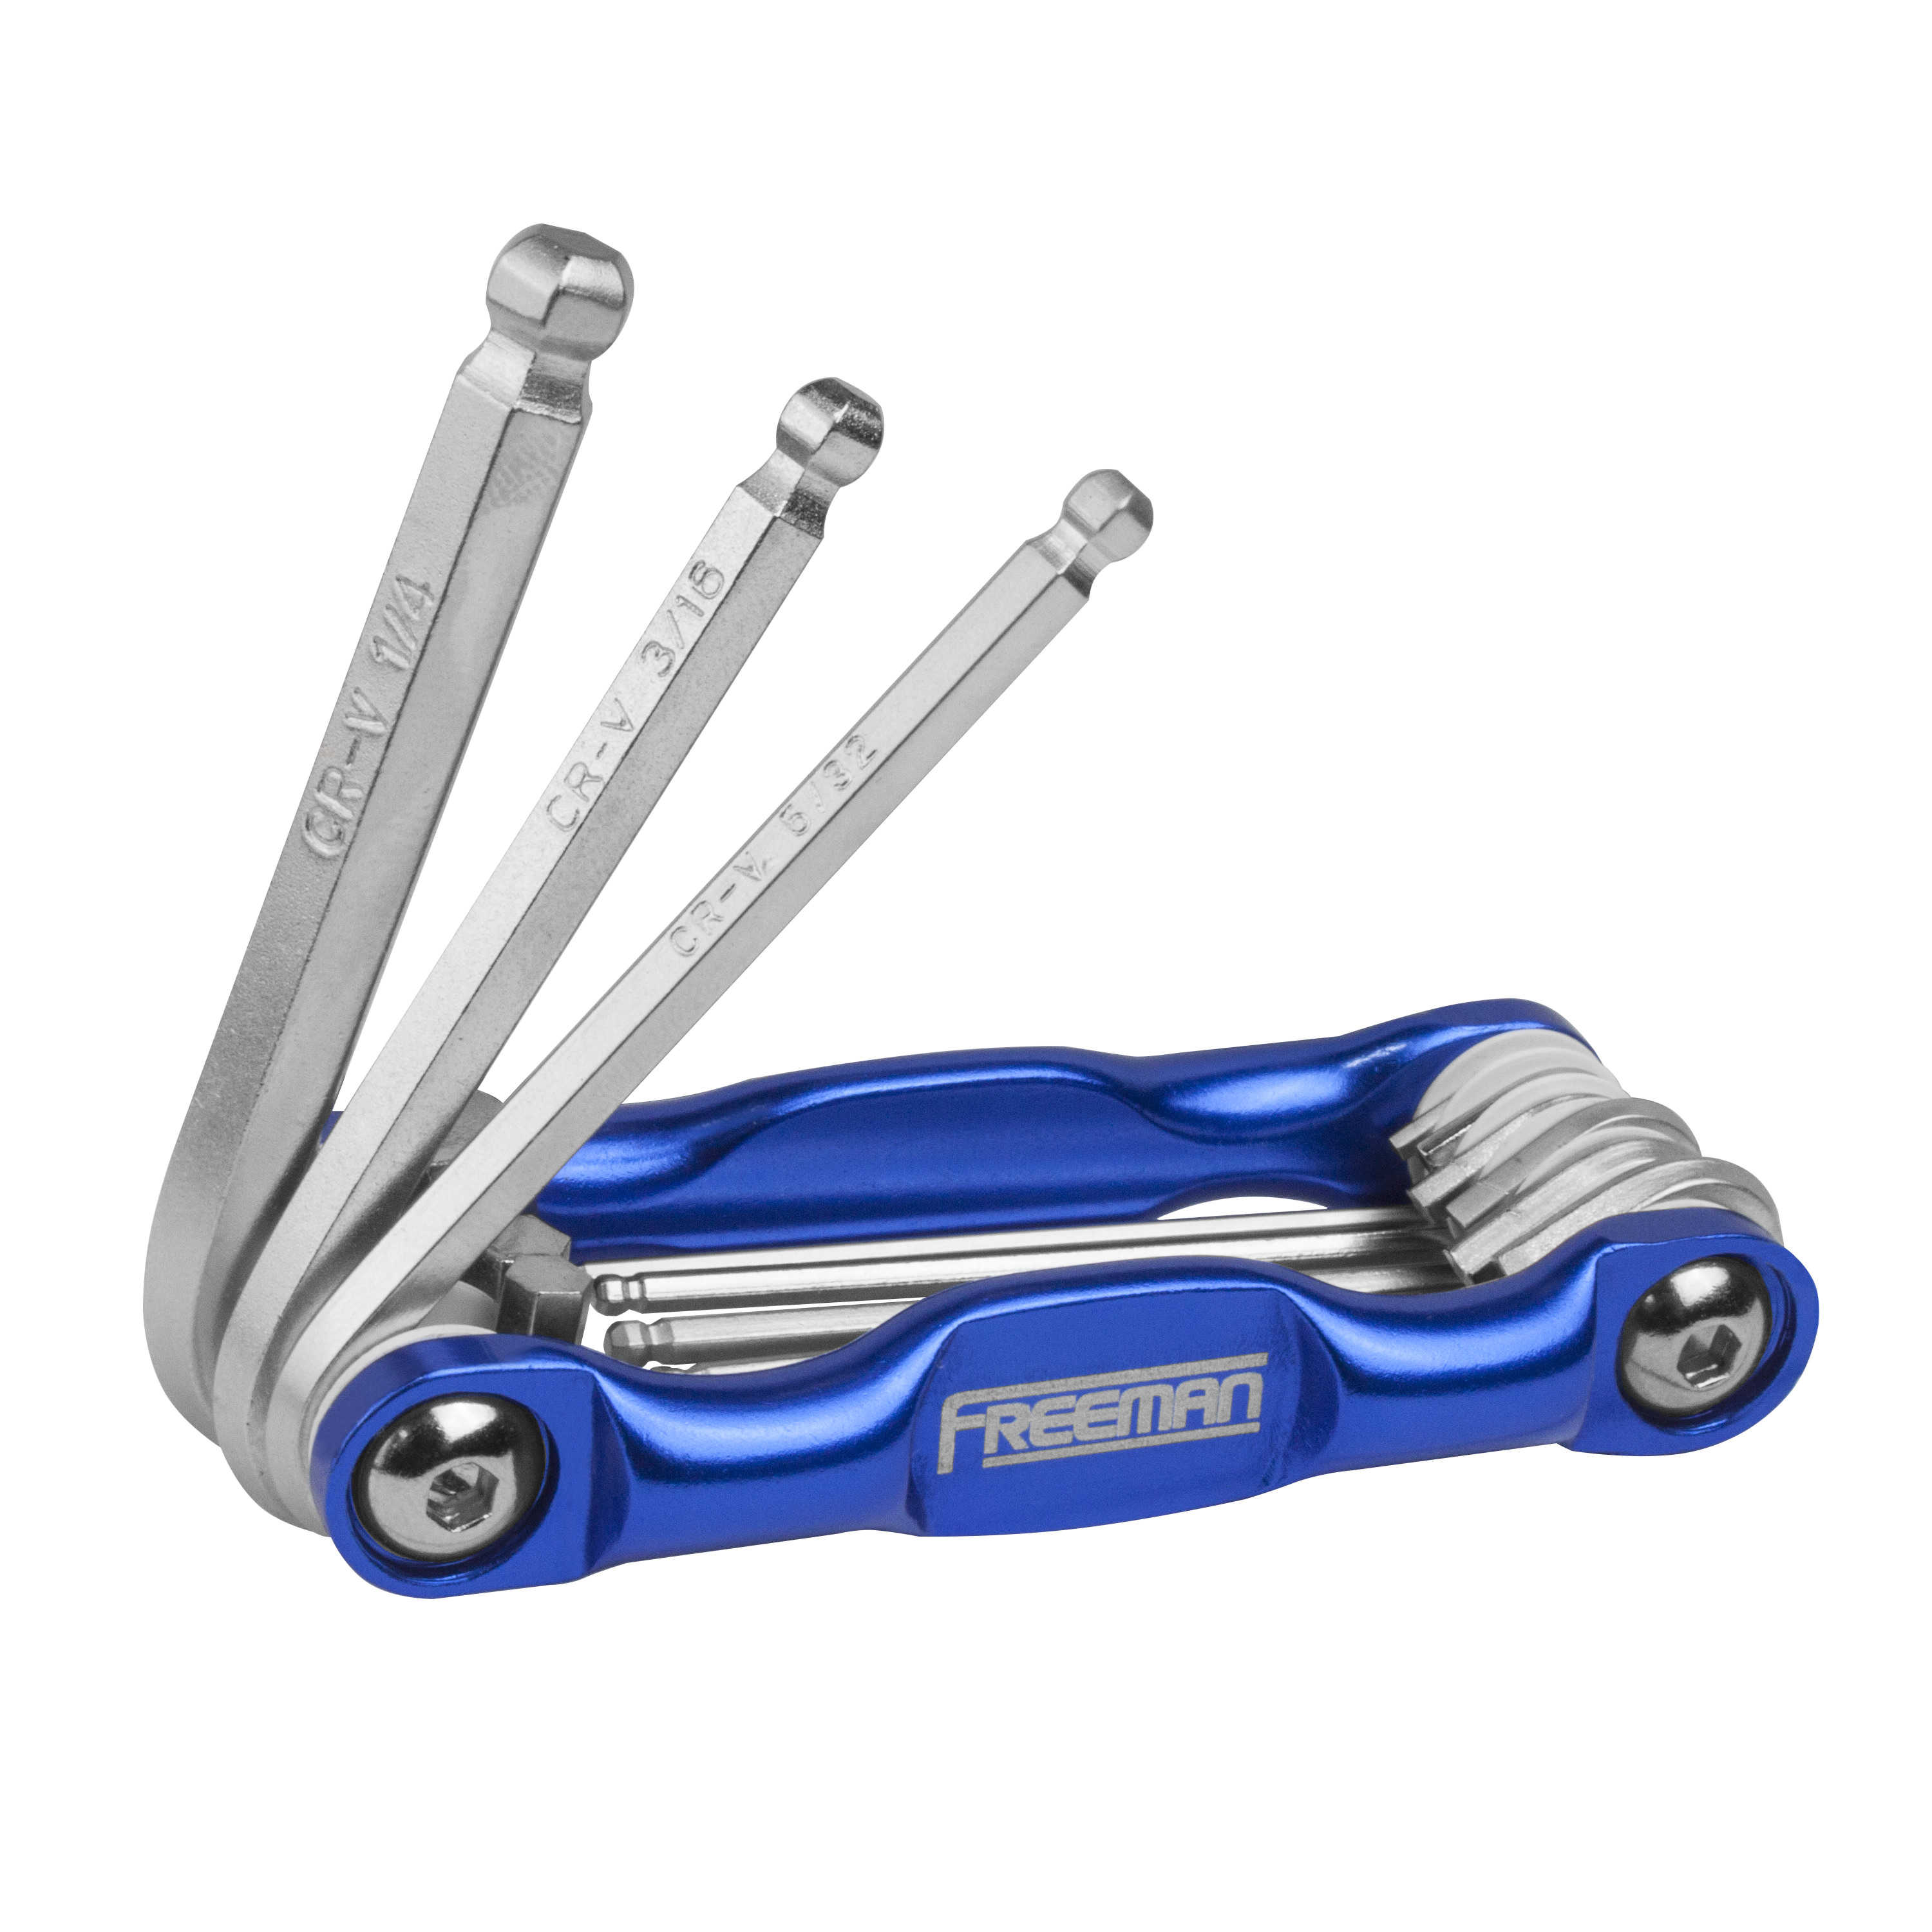 Freeman 3-Piece Aluminum Folding Metric Hex/SAE Hex Wrench and Torx Key Kit